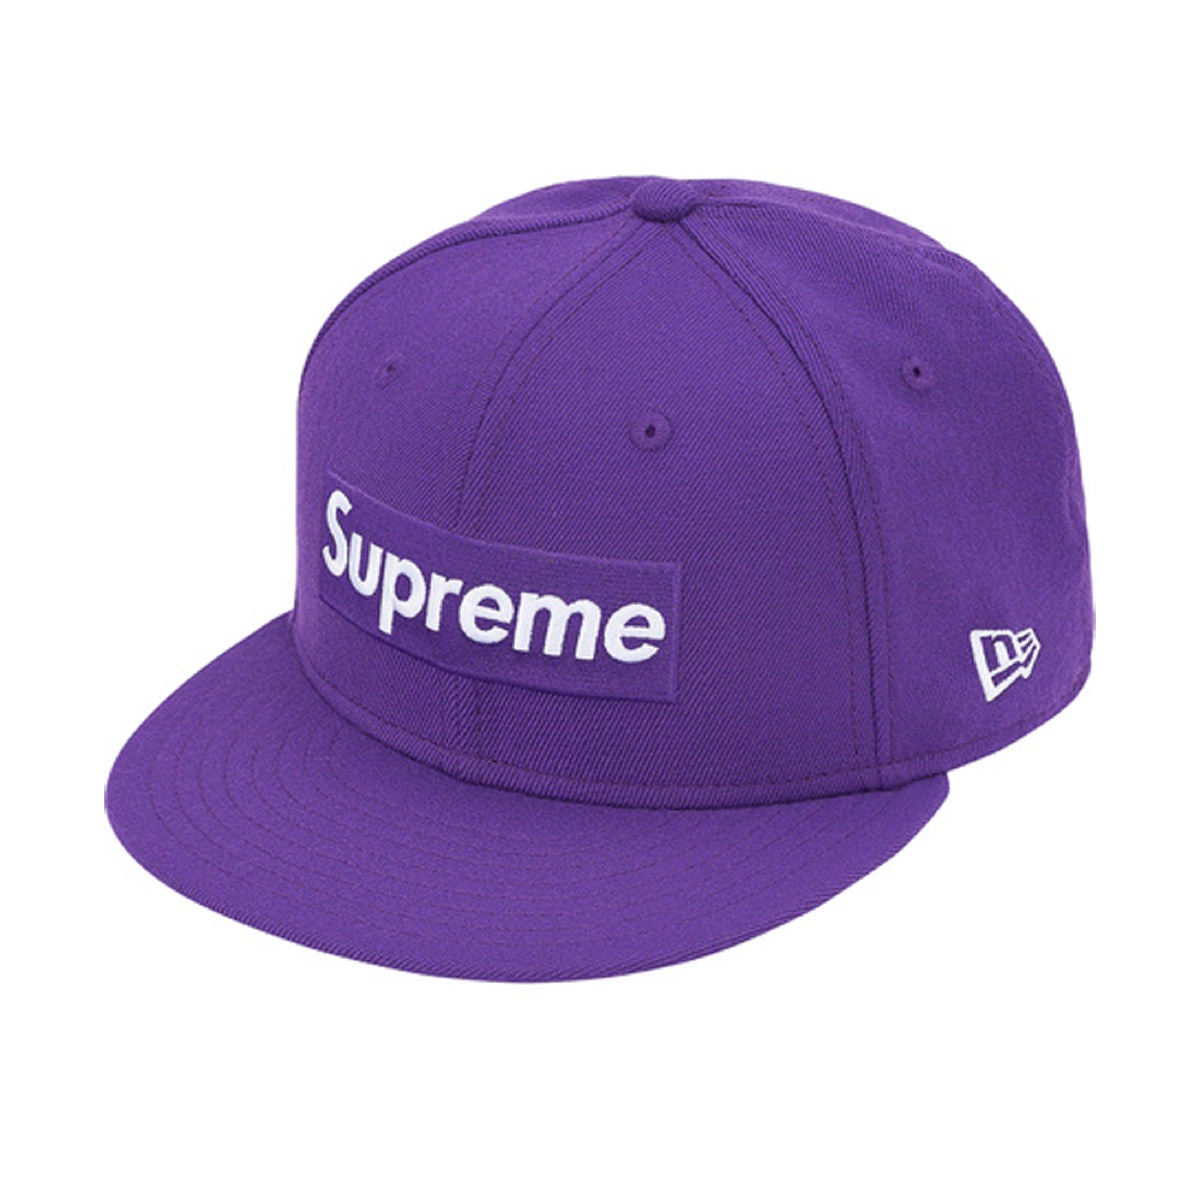 Supreme World Famous Box Logo New Era Purple